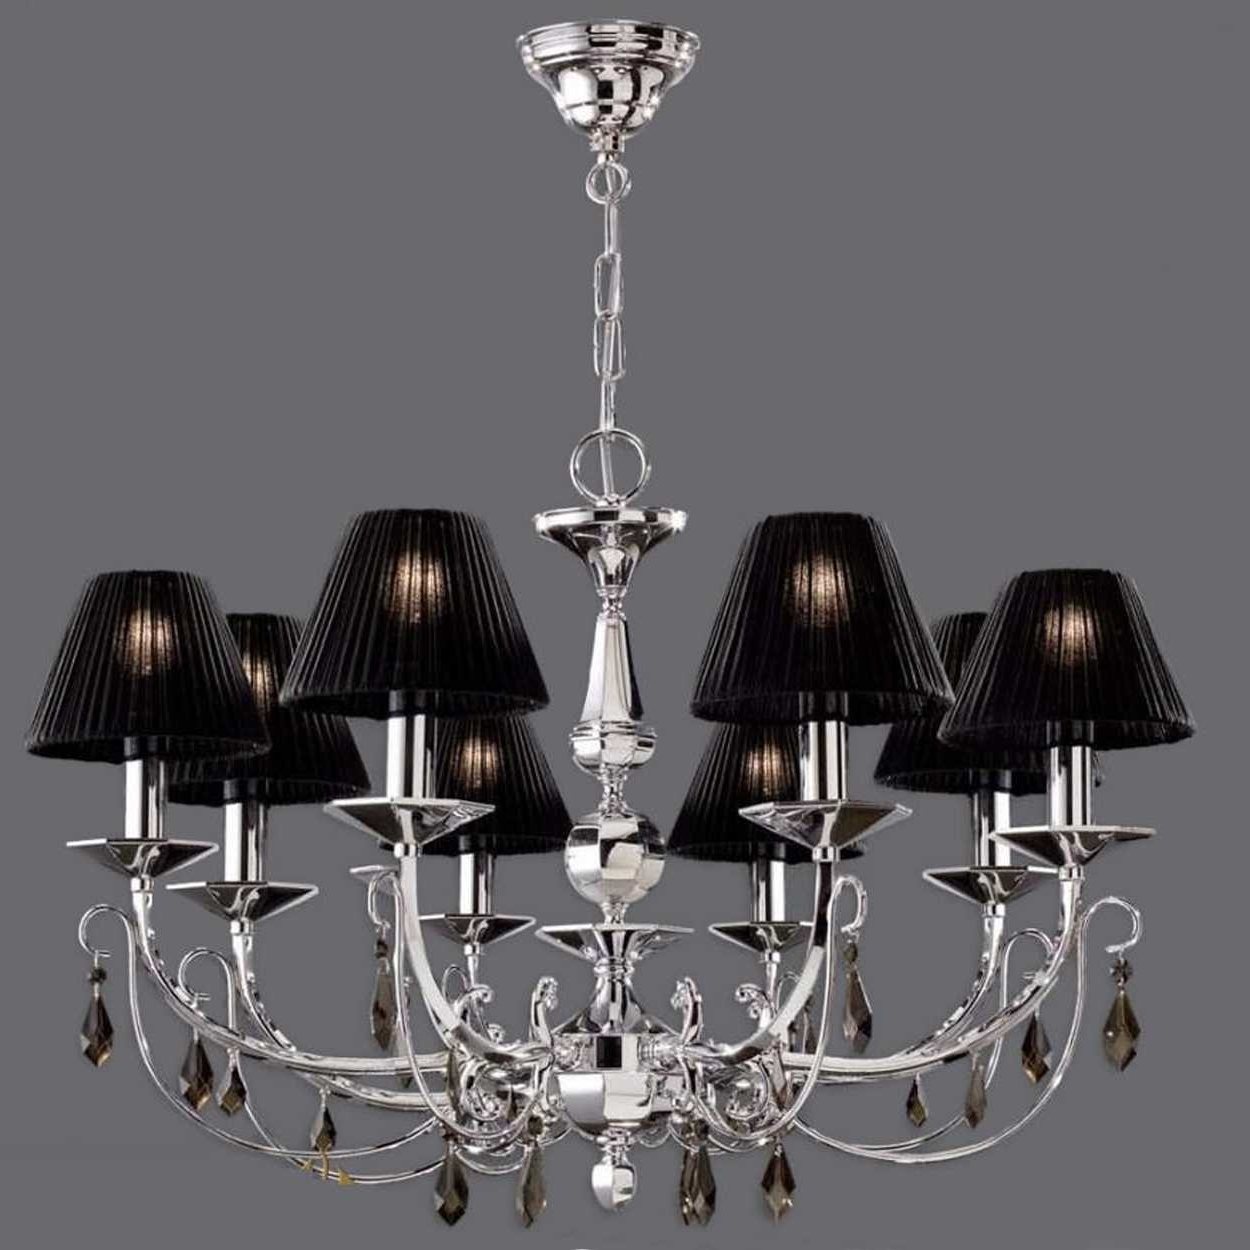 Fashionable Lampshades For Chandeliers In Black Lamp Shade With Crystals Fringed Also Chandeliers Design (View 5 of 20)